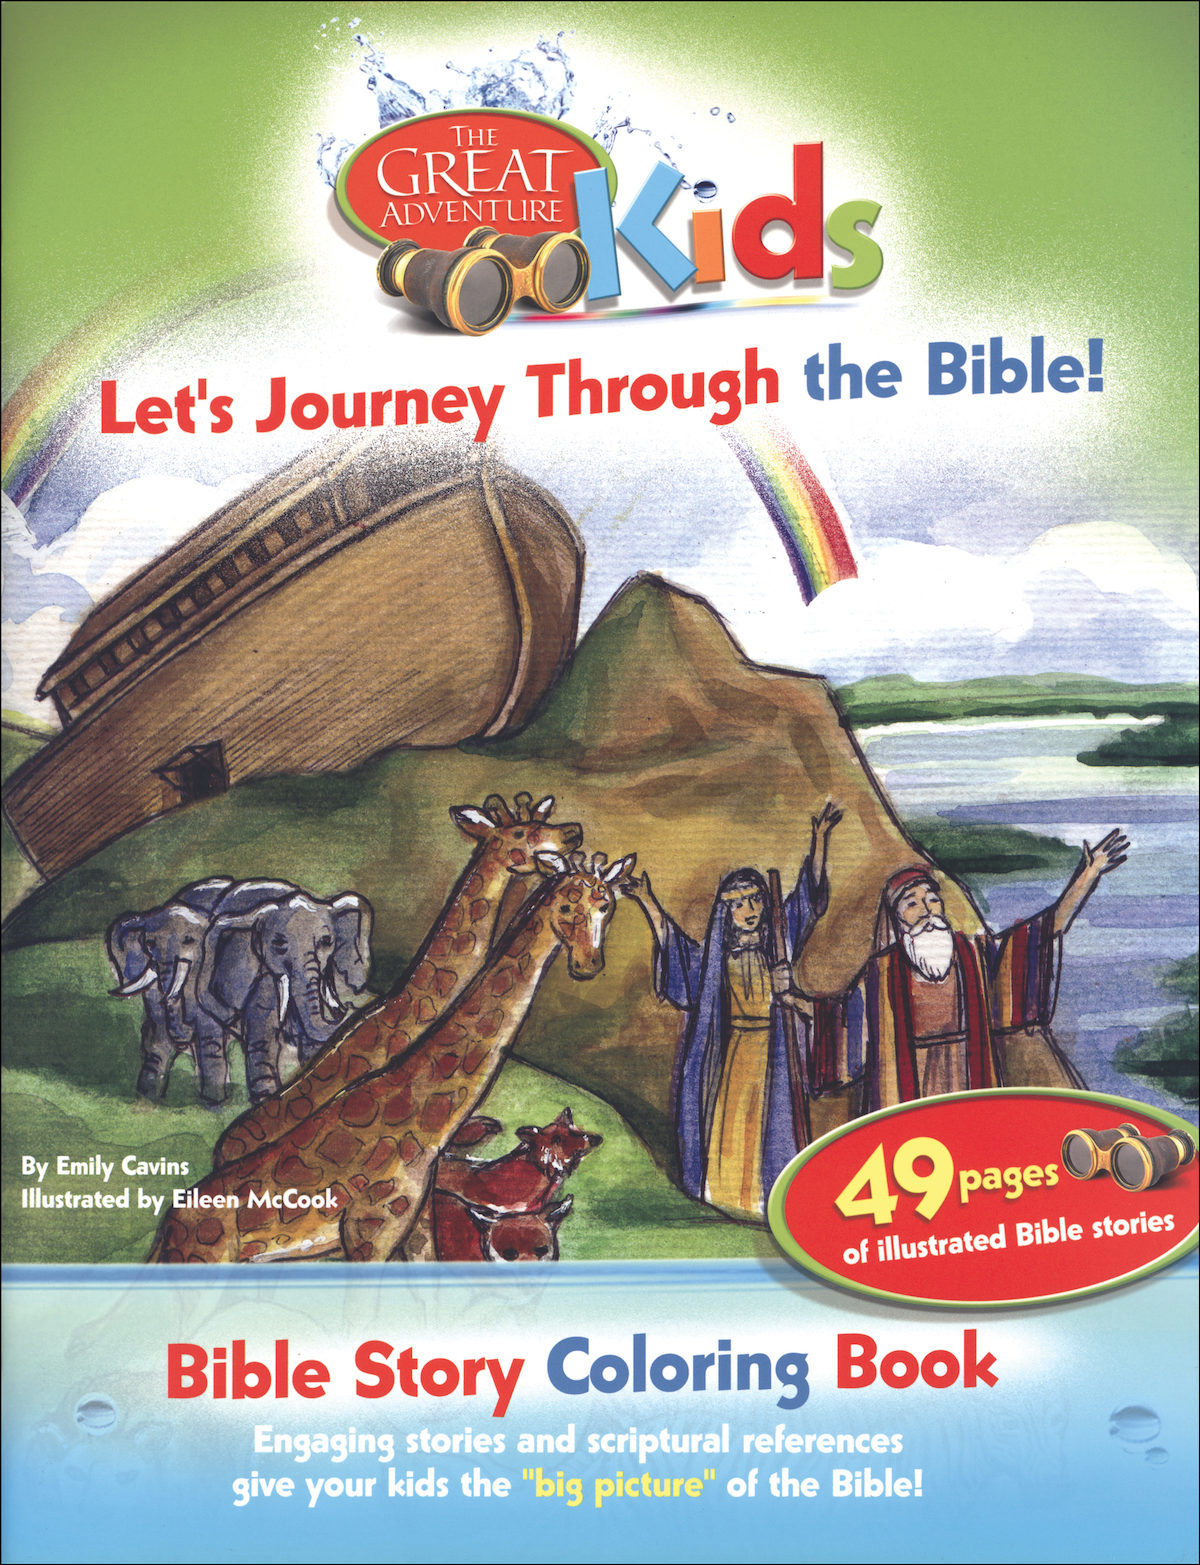 The Great Adventure Kids: Let\'s Journey Through the Bible! Coloring Book